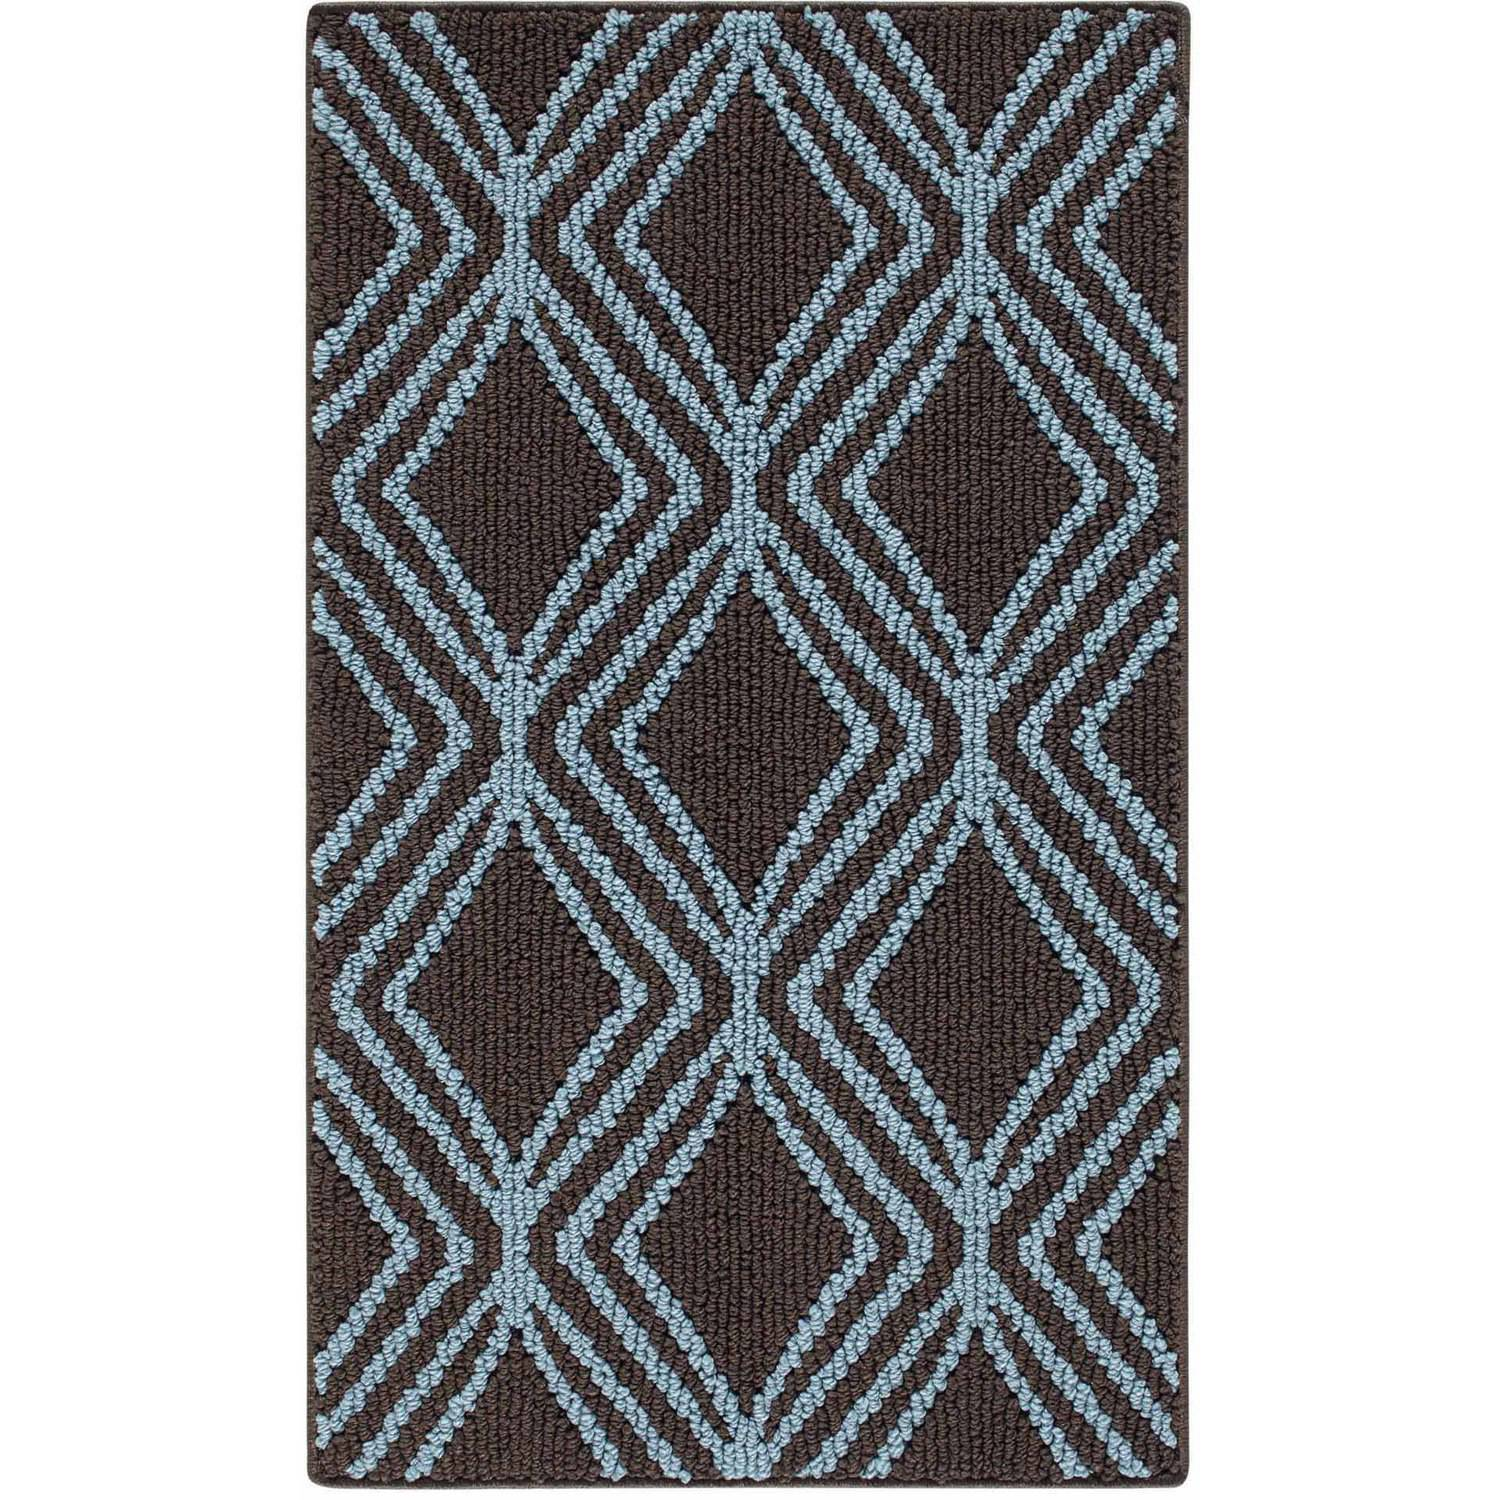 Mainstays Ms 20x34 Wickham Pool/brown Accent Rug